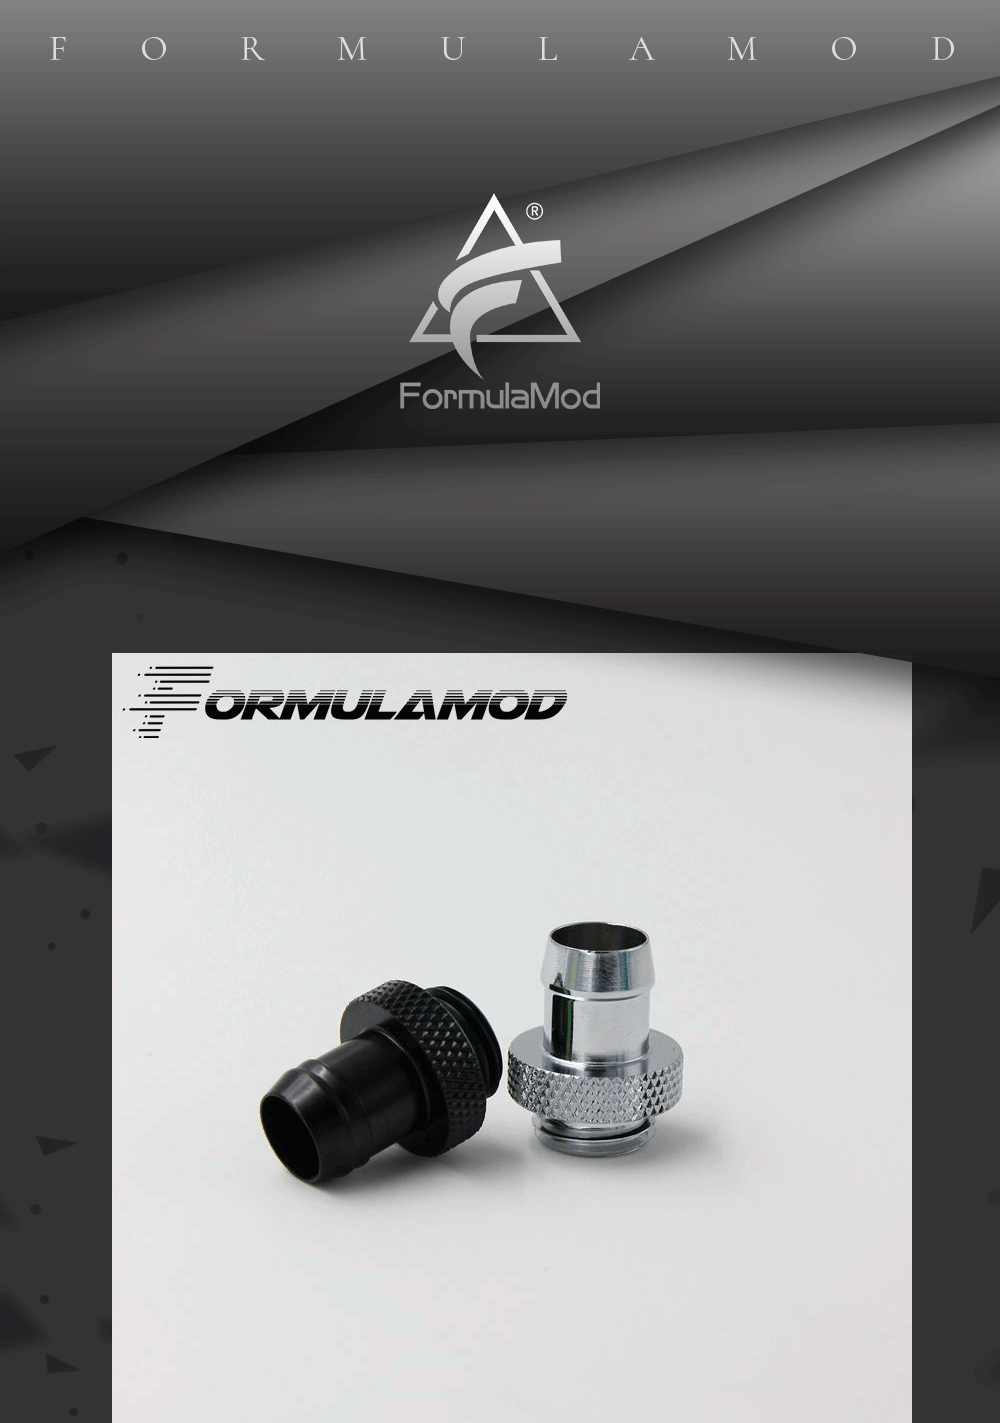 "FormulaMod Fm-3FBT, 3/8""ID*1/2""OD(10x13mm) & 3/8""ID*5/8""OD(10x16mm) Soft Tube Barb Fittings, G1/4"" Fittings For Soft Tubes"